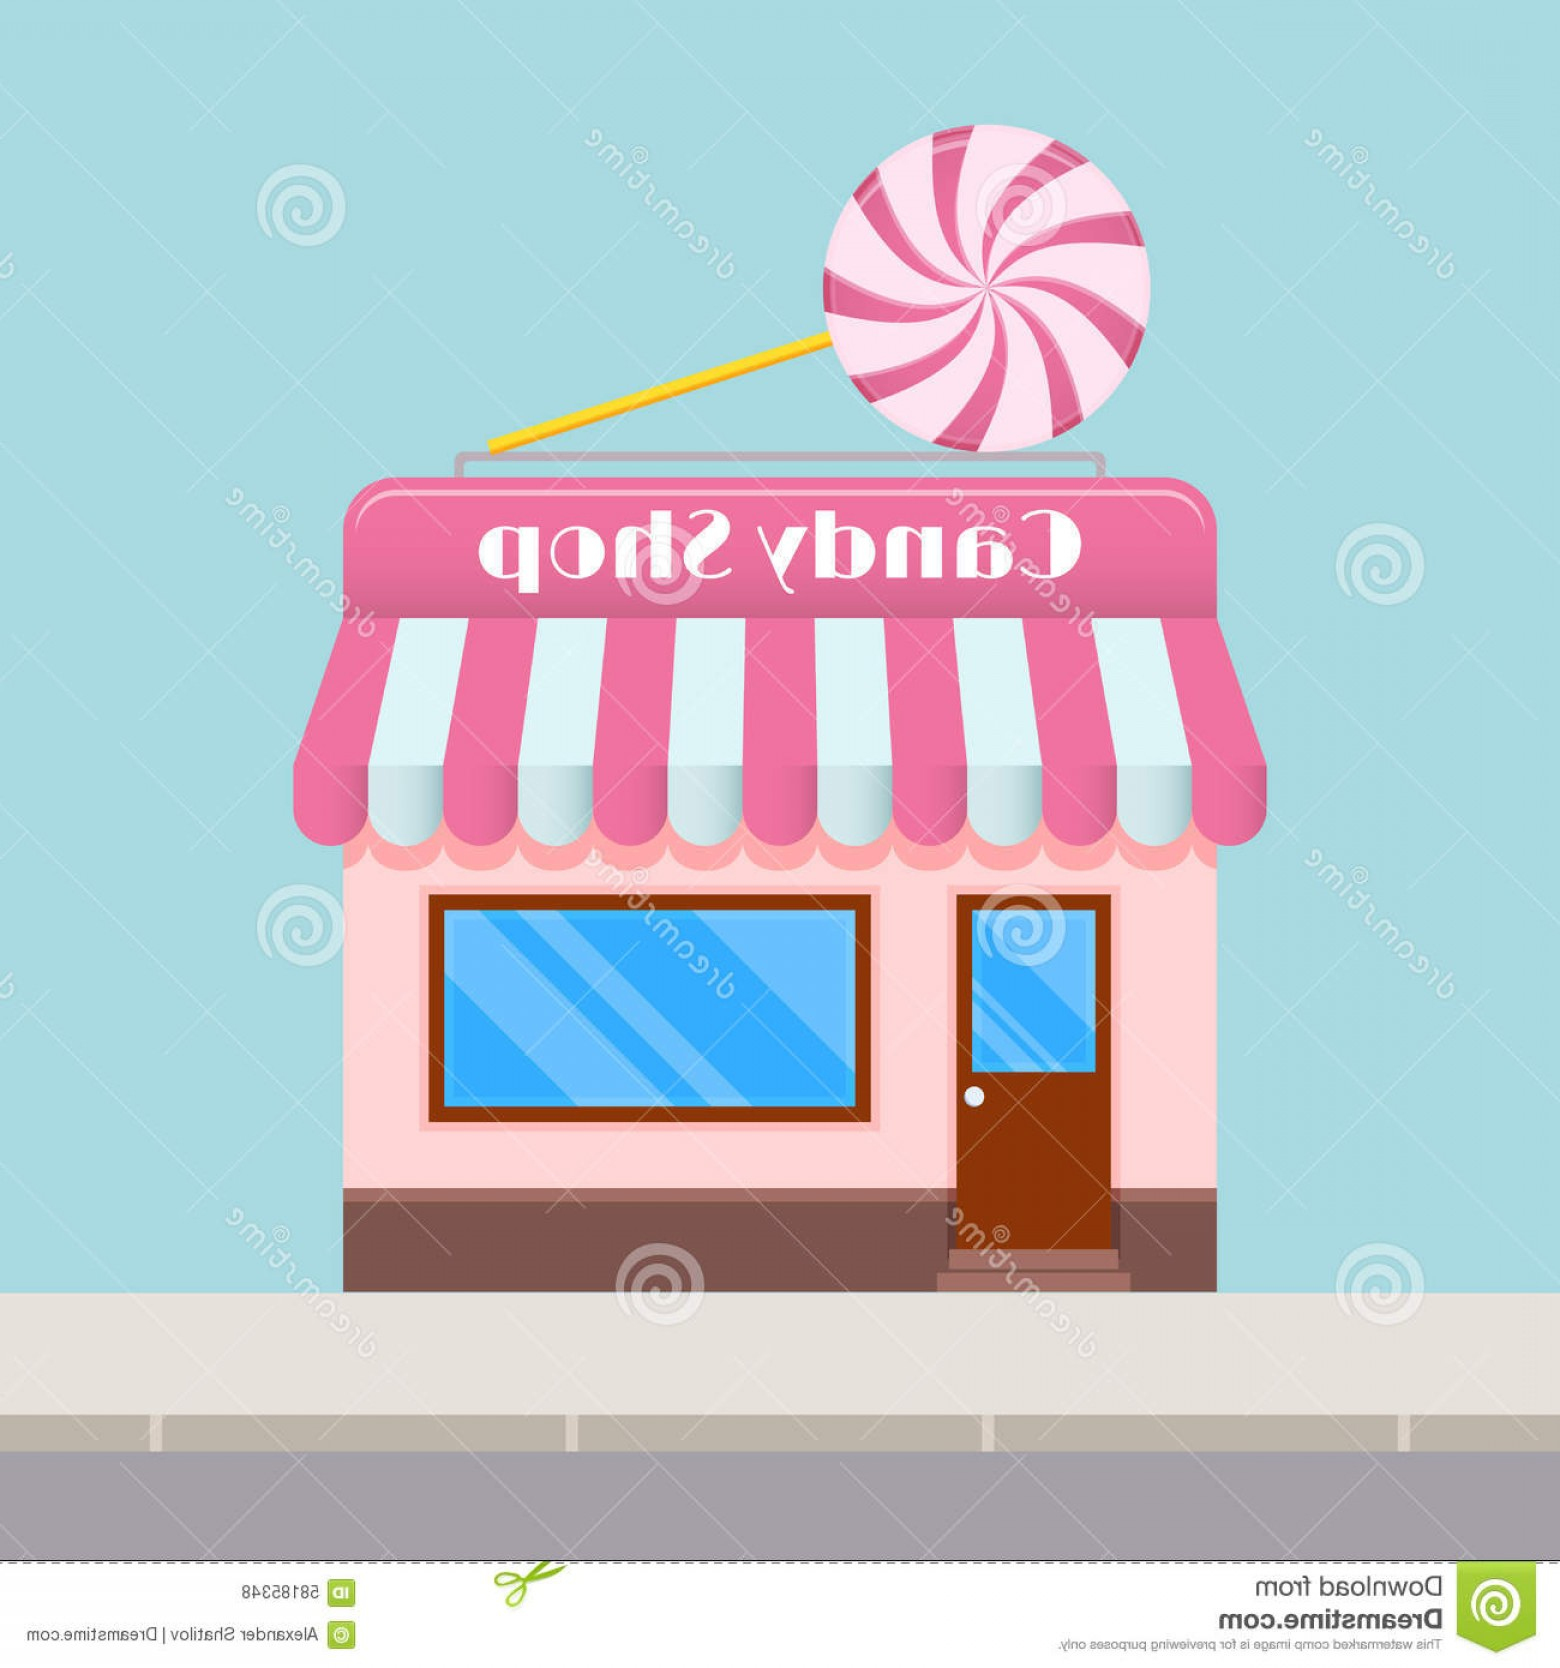 Candy Shop Vector: Stock Illustration Bright Cartoon Candy Store Canopy Flat Style Image